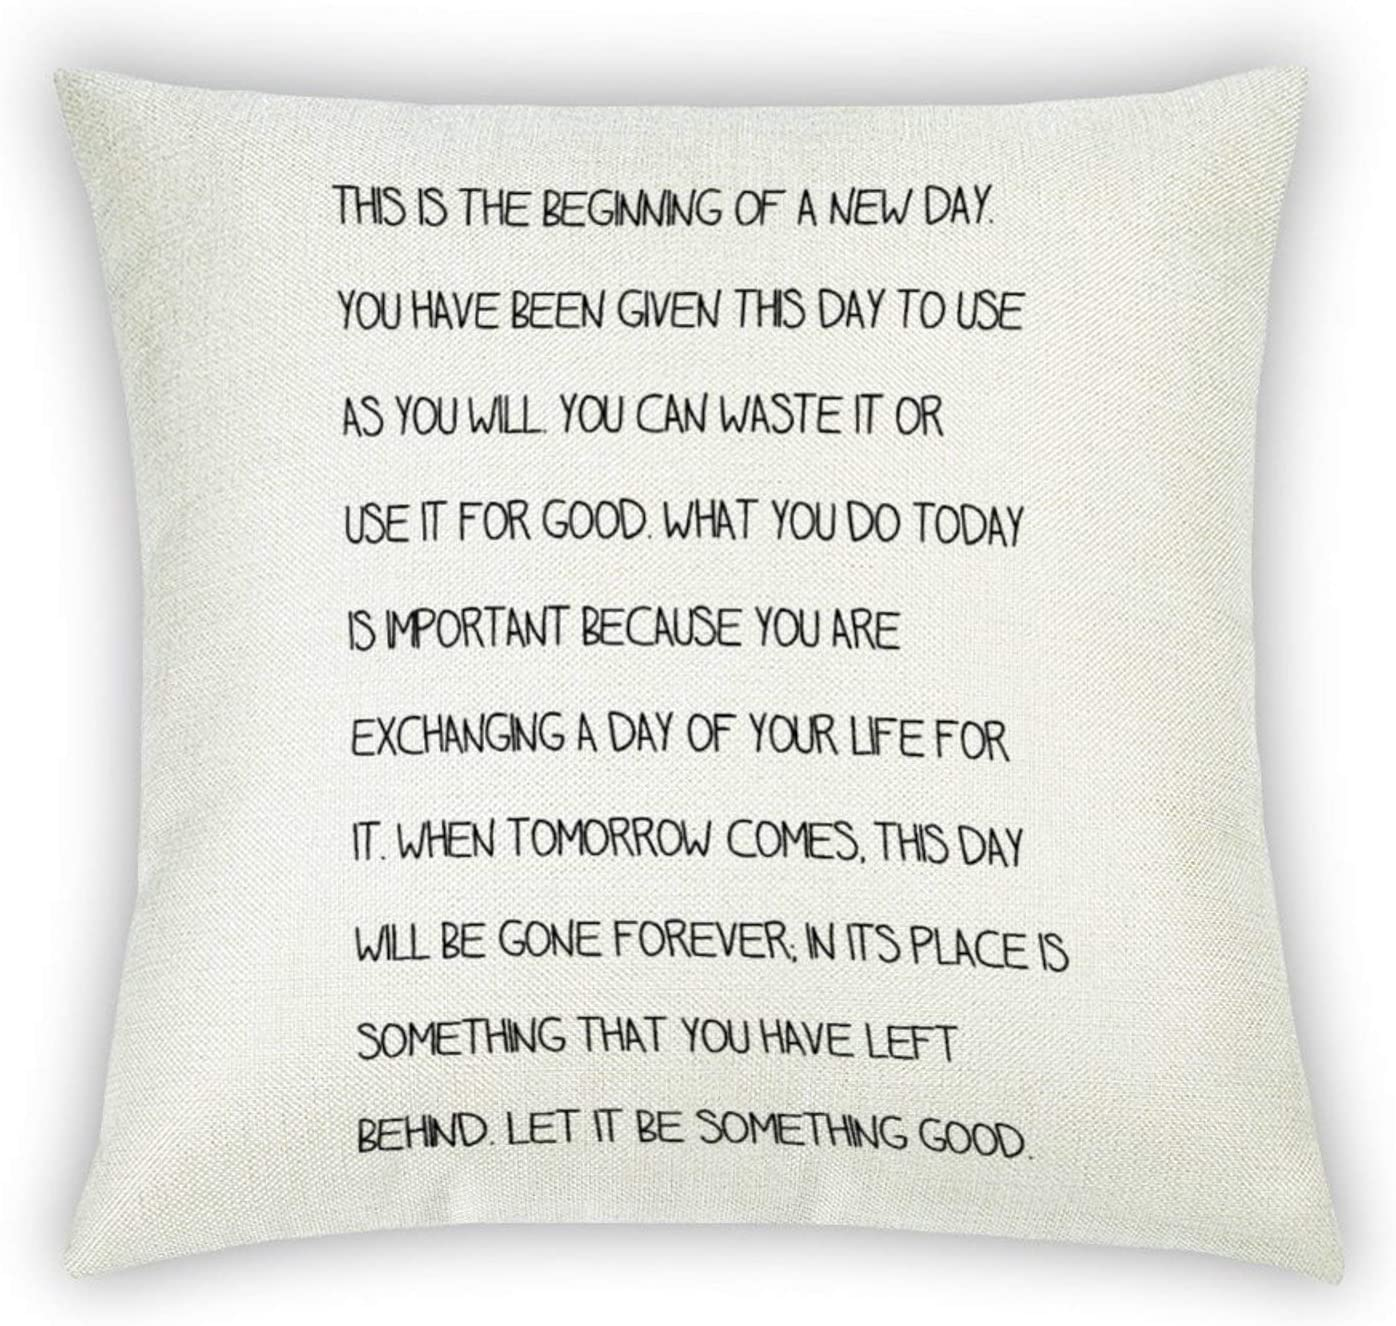 This Is A Beginning of A New Day Throw Pillow Case Cushion Cover,Inspirational quotes,quote saying words Pillow Cover for Sofa Couch Linen, Decorative Pillowcase Gift Rustc Farmhouse Home 18x18